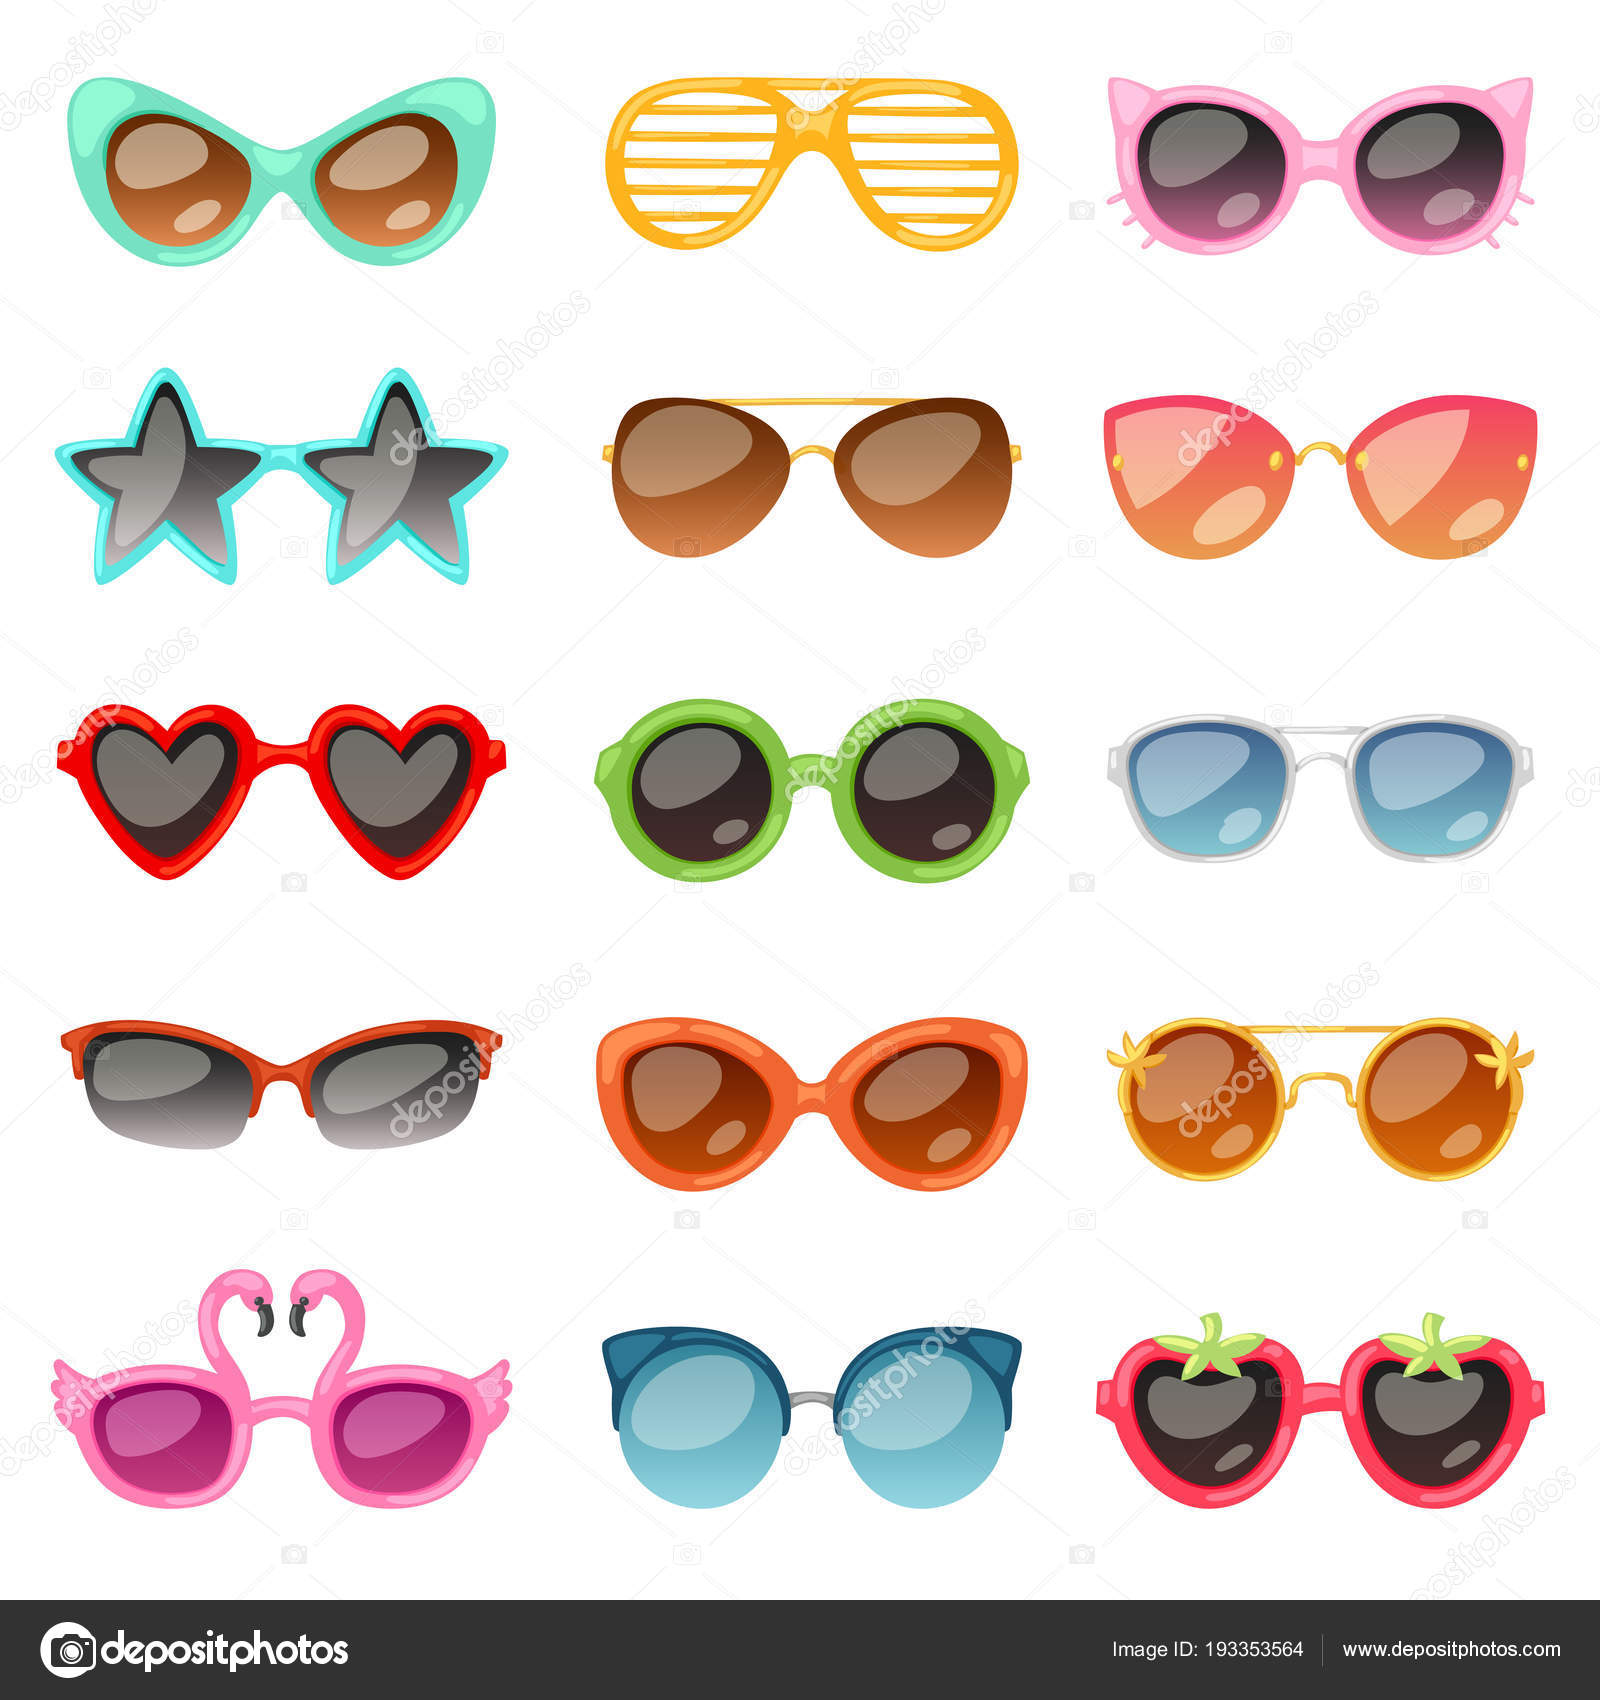 009674bfd6f Glasses vector cartoon eyeglasses or sunglasses in stylish shapes for party  and fashion optical spectacles set of eyesight view accessories  illustration ...